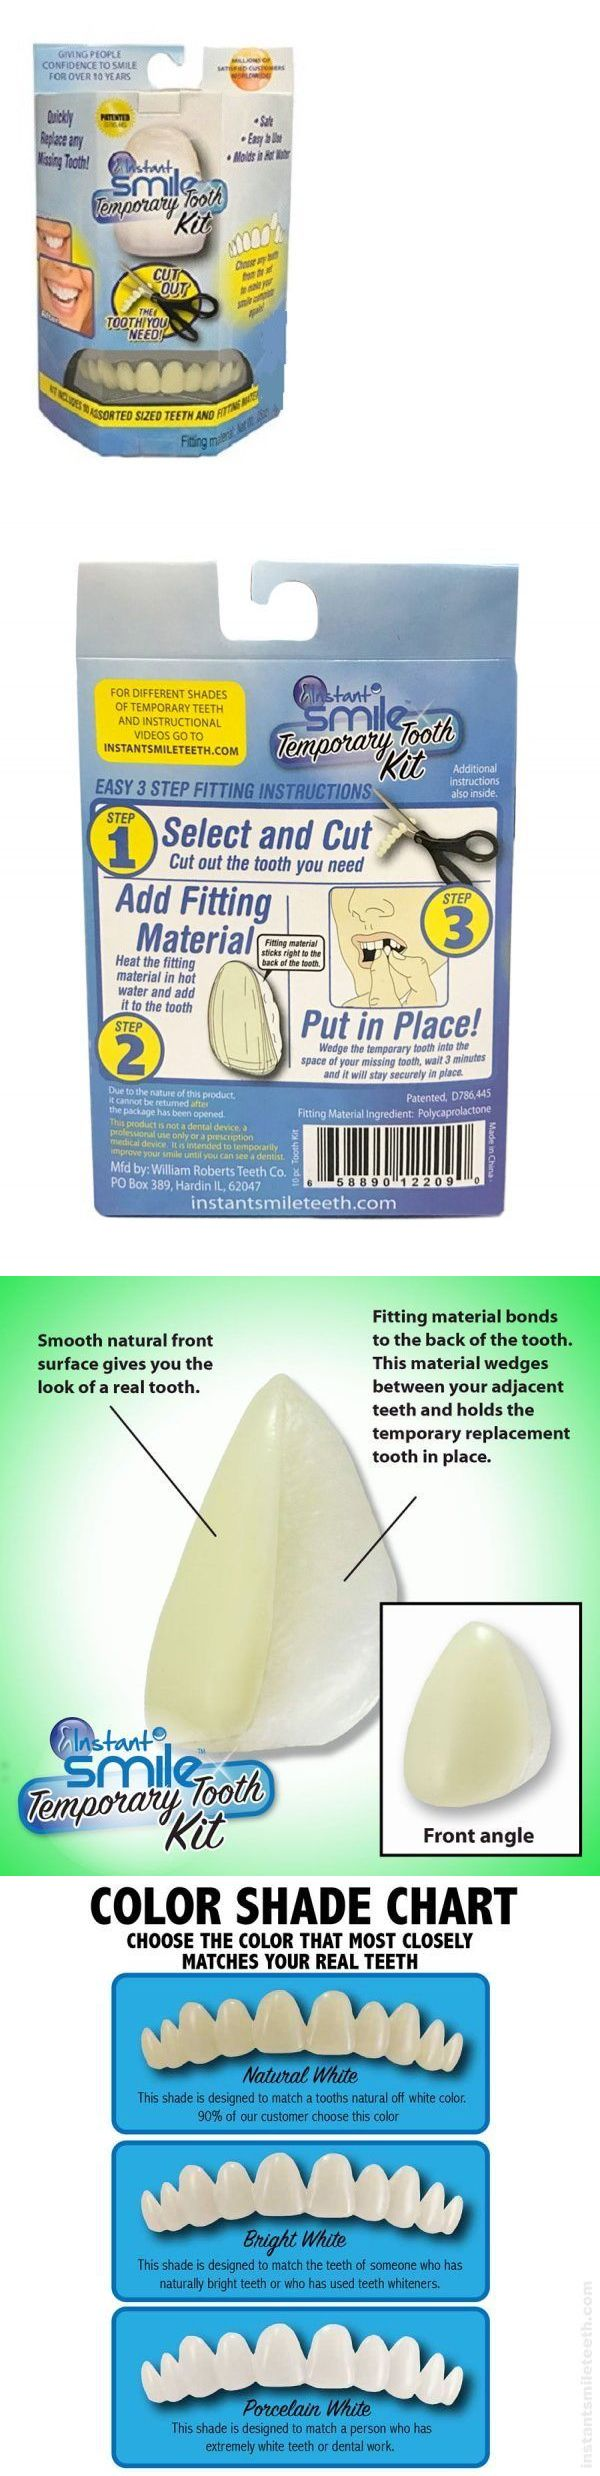 Instant Smile Teeth Replacement Kit Easy Temporary Tooth Fix Natural